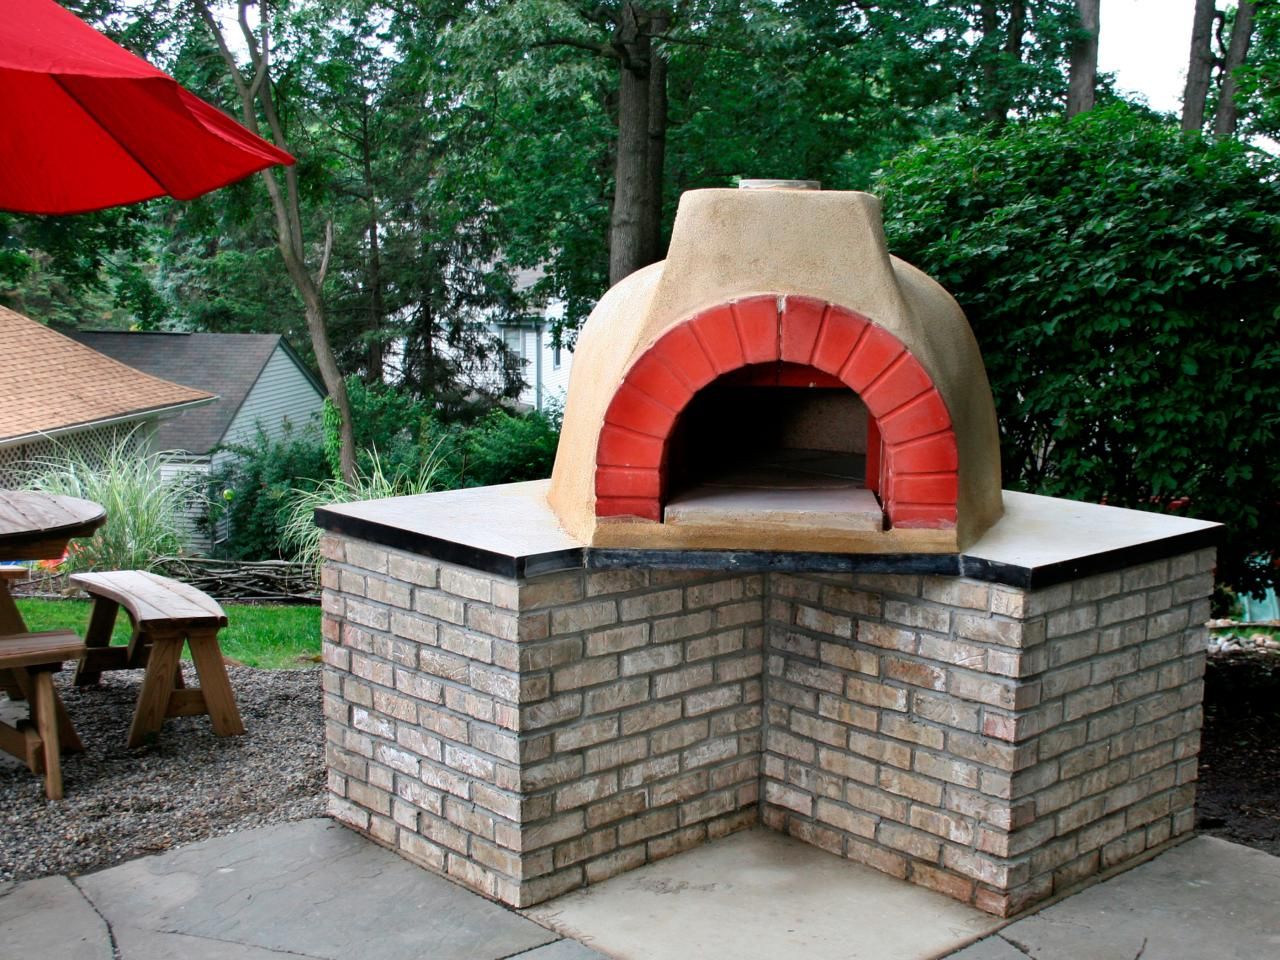 How to Build an Outdoor Pizza Oven | HGTV on Outdoor Patio With Pizza Oven  id=70374